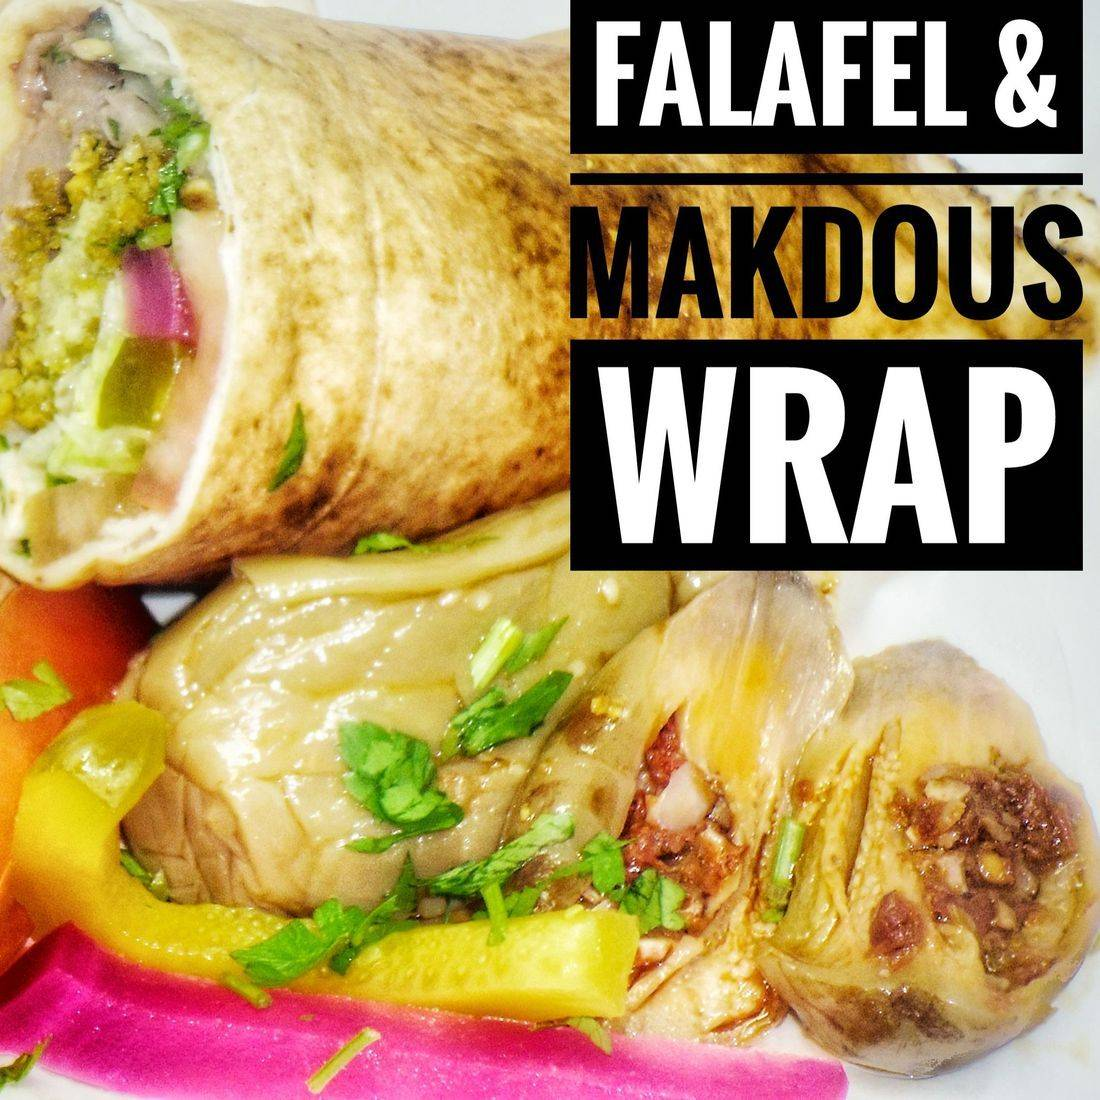 Falafel and Makdous Wrap Vegetarian and Vegan.